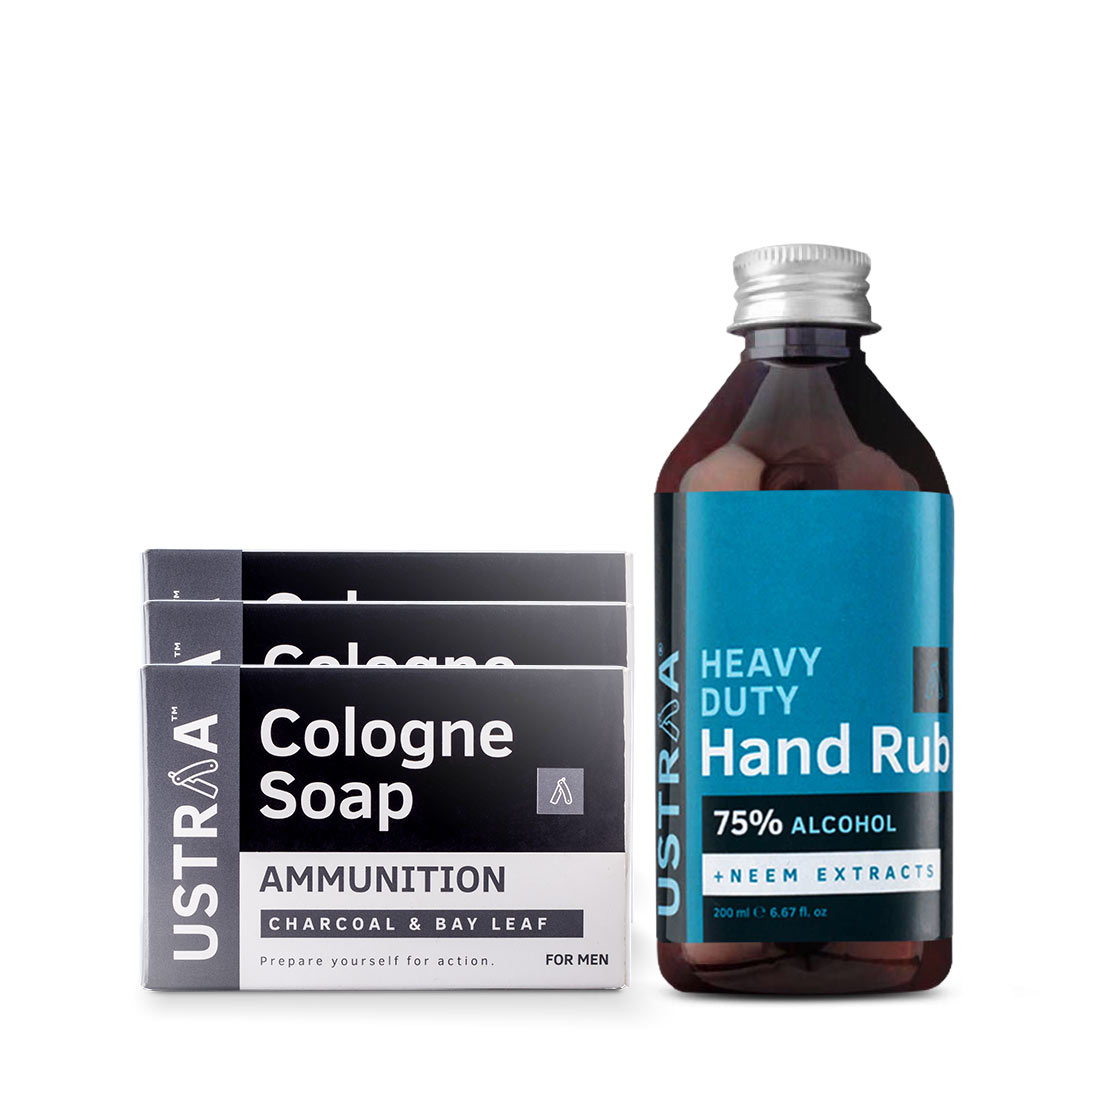 Cologne Soap - Ammunition - Set of 3 and Hand Rub - 200 ml